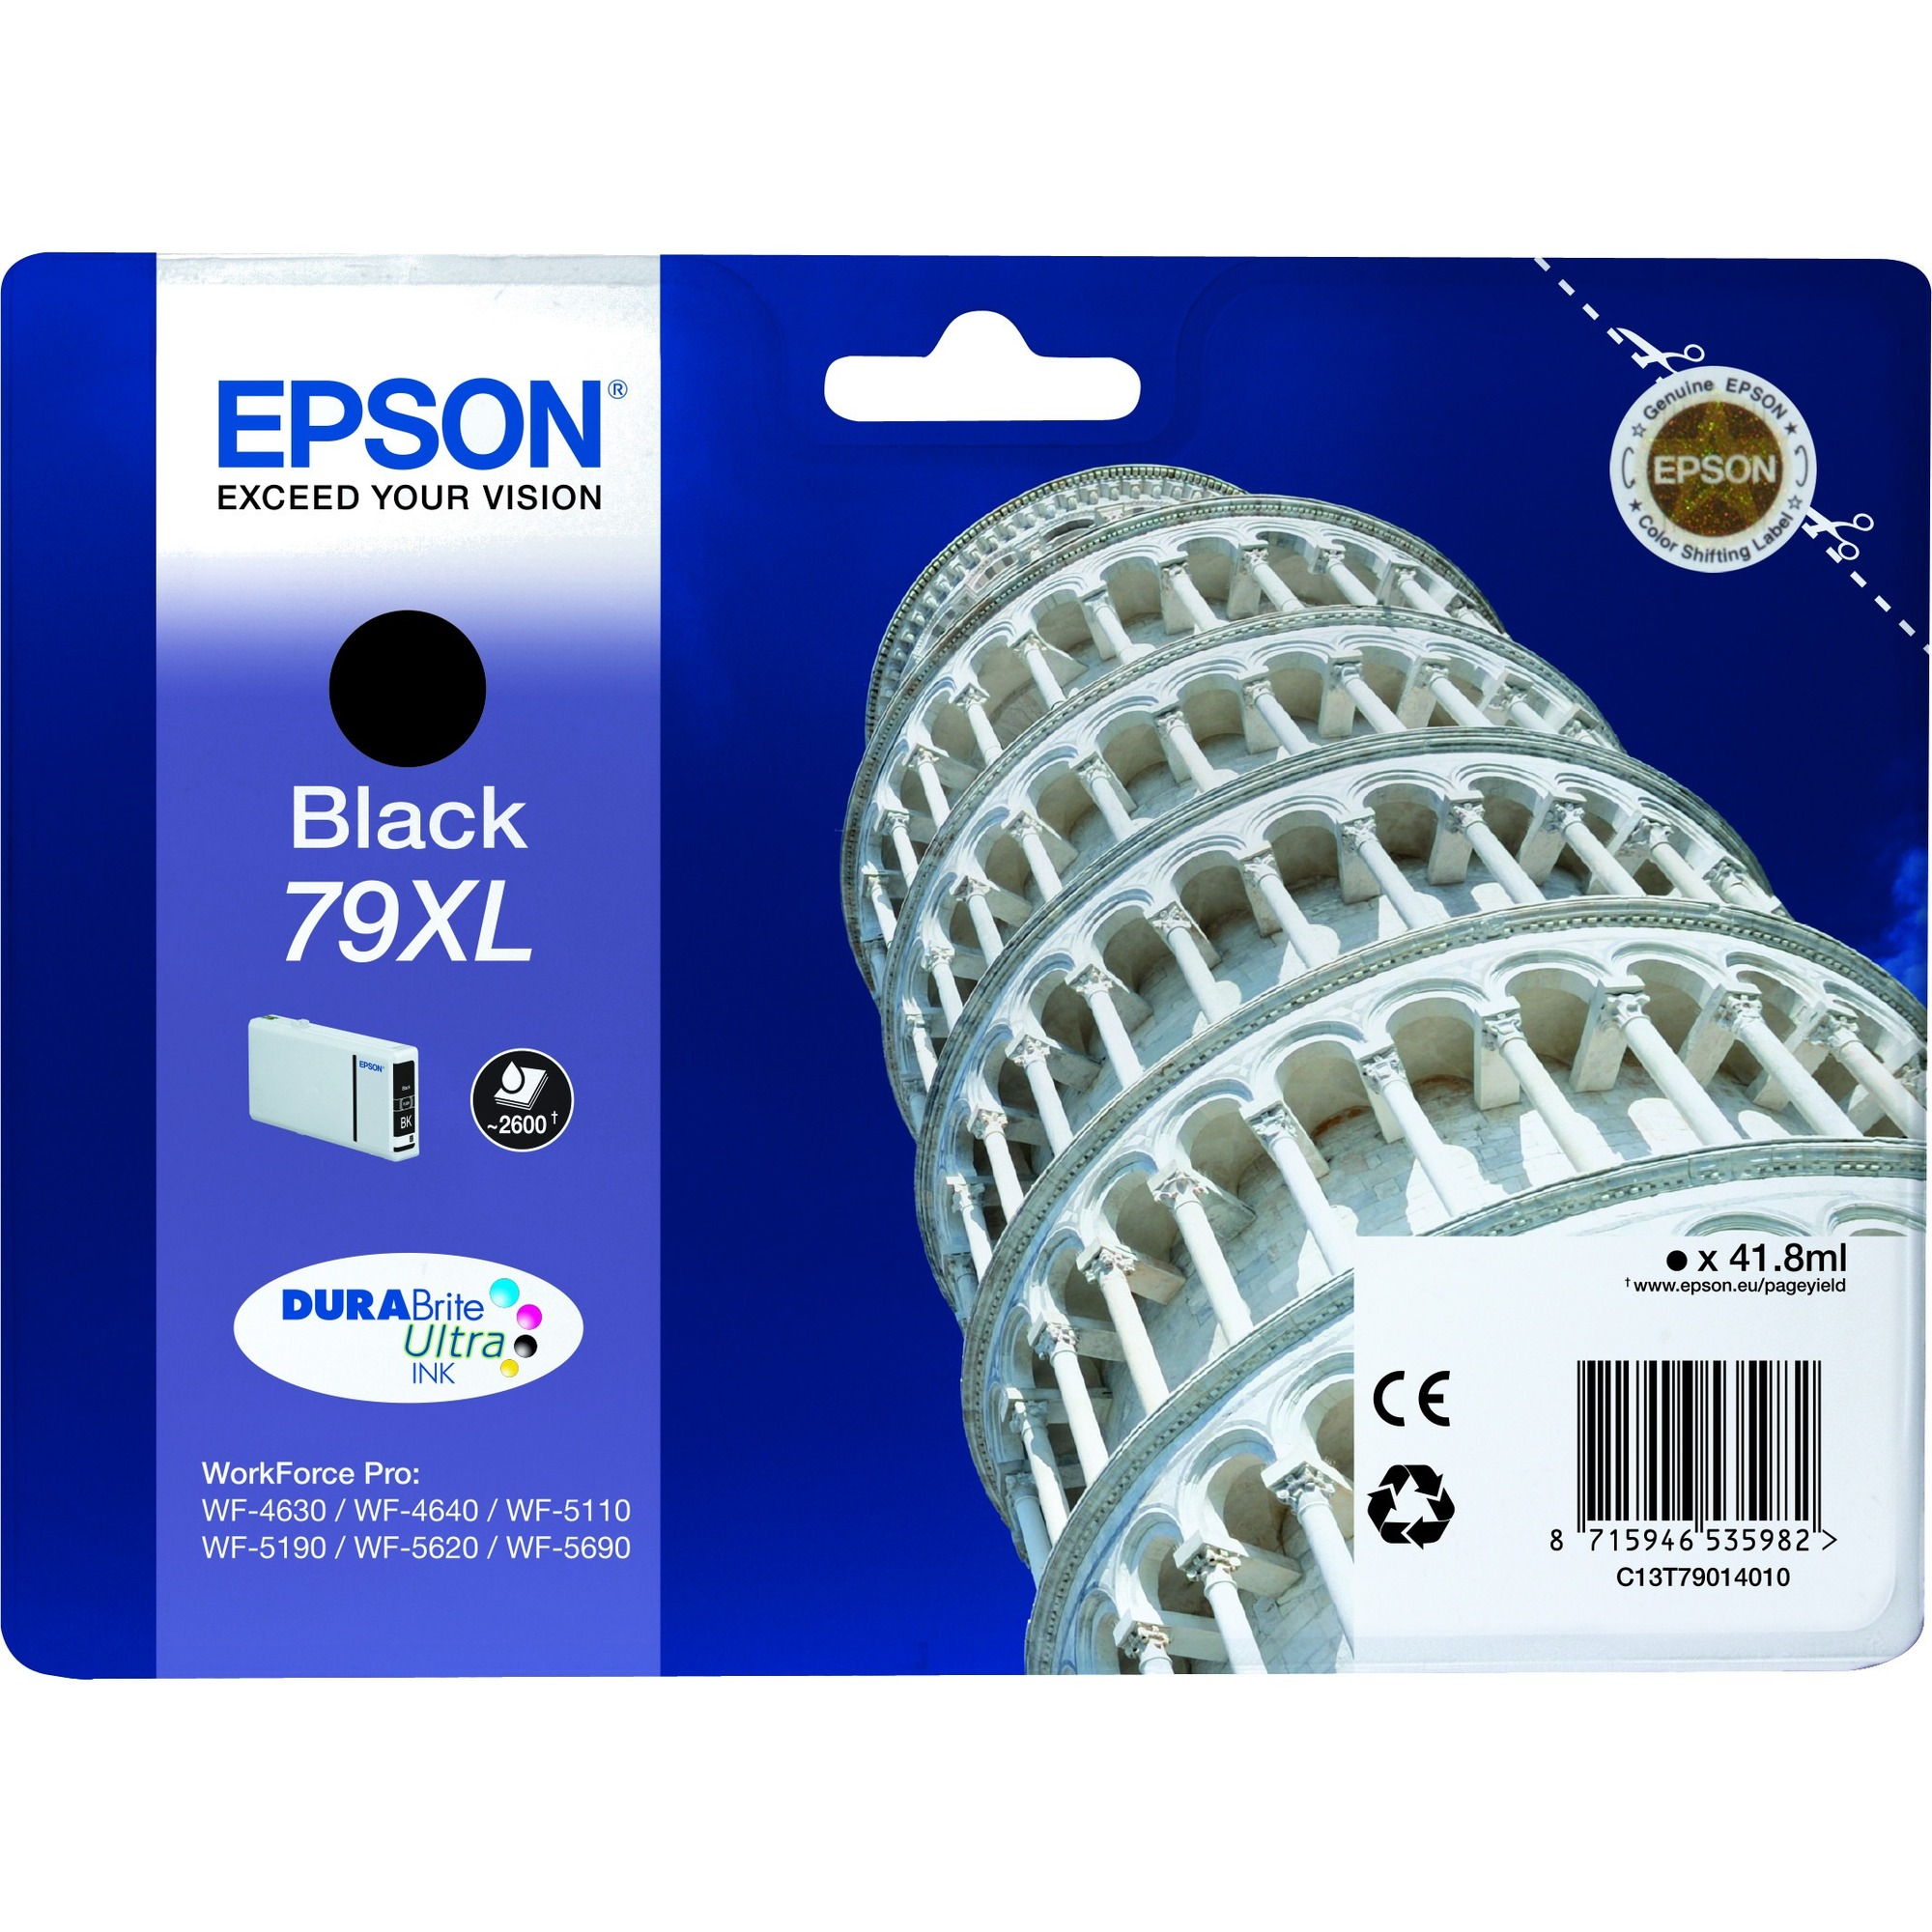 Epson DURABrite 79XL Ink Cartridge - Black